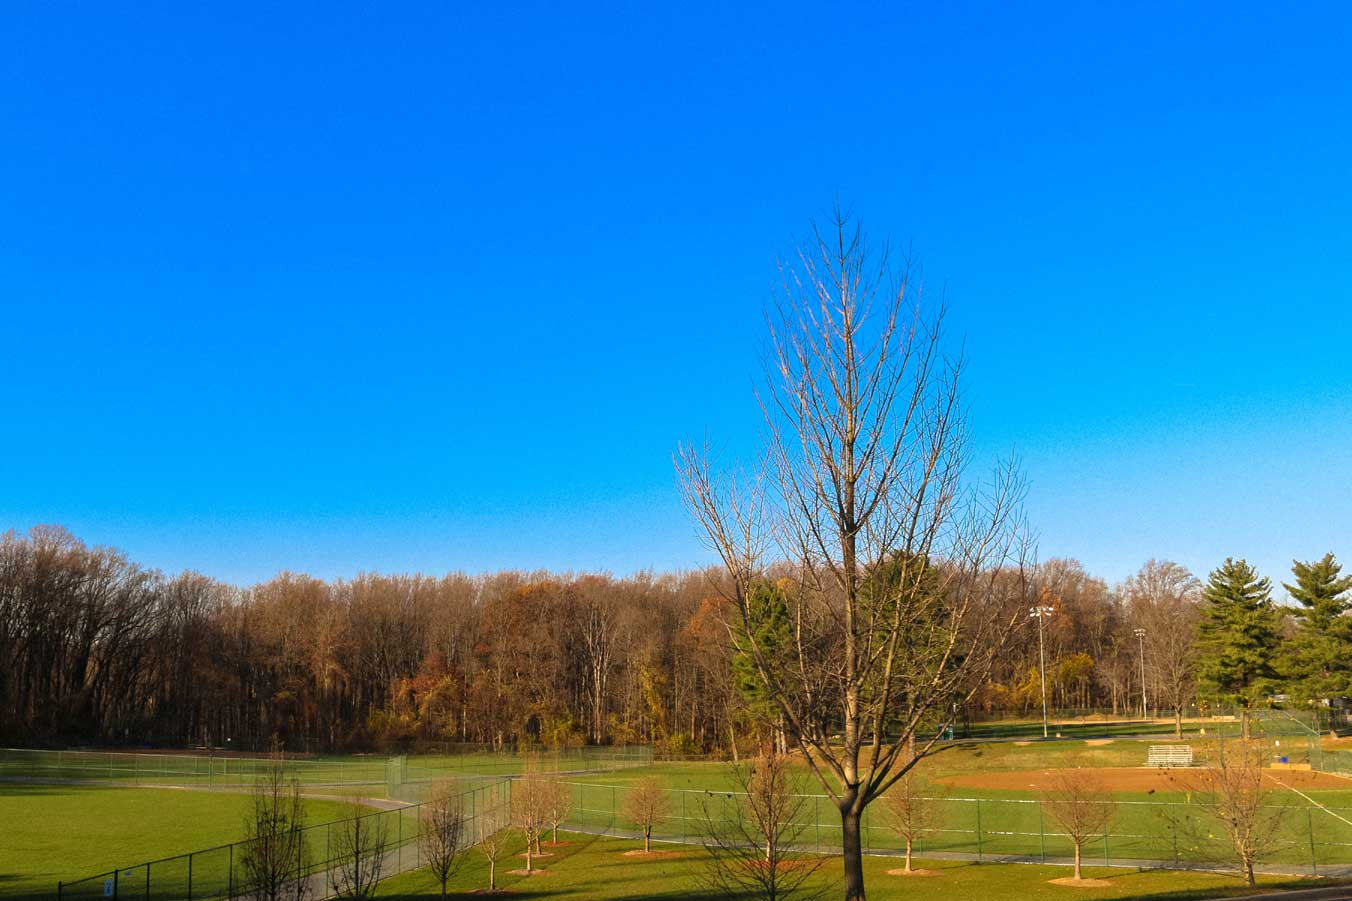 View of sport fields in Wheaton, MD